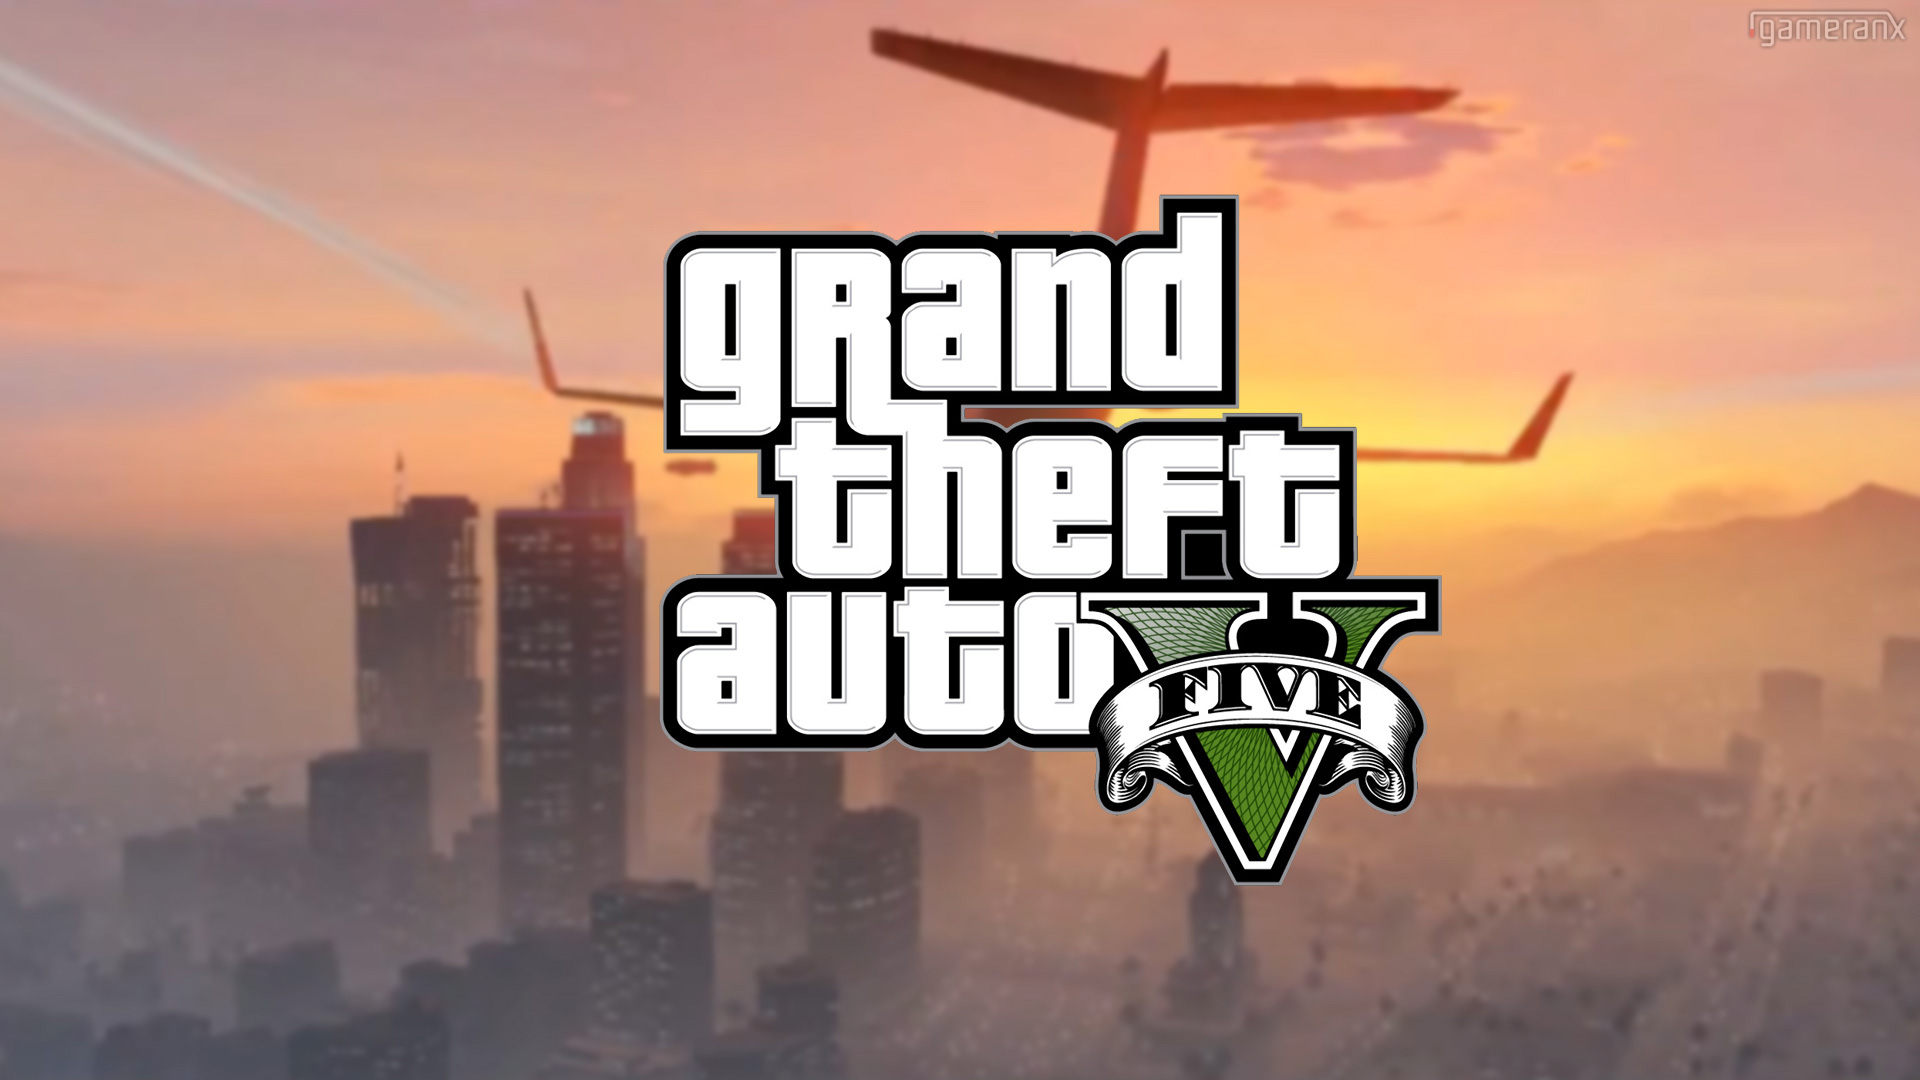 Gta 5 wallpapers pictures images - Gta v wallpaper ...